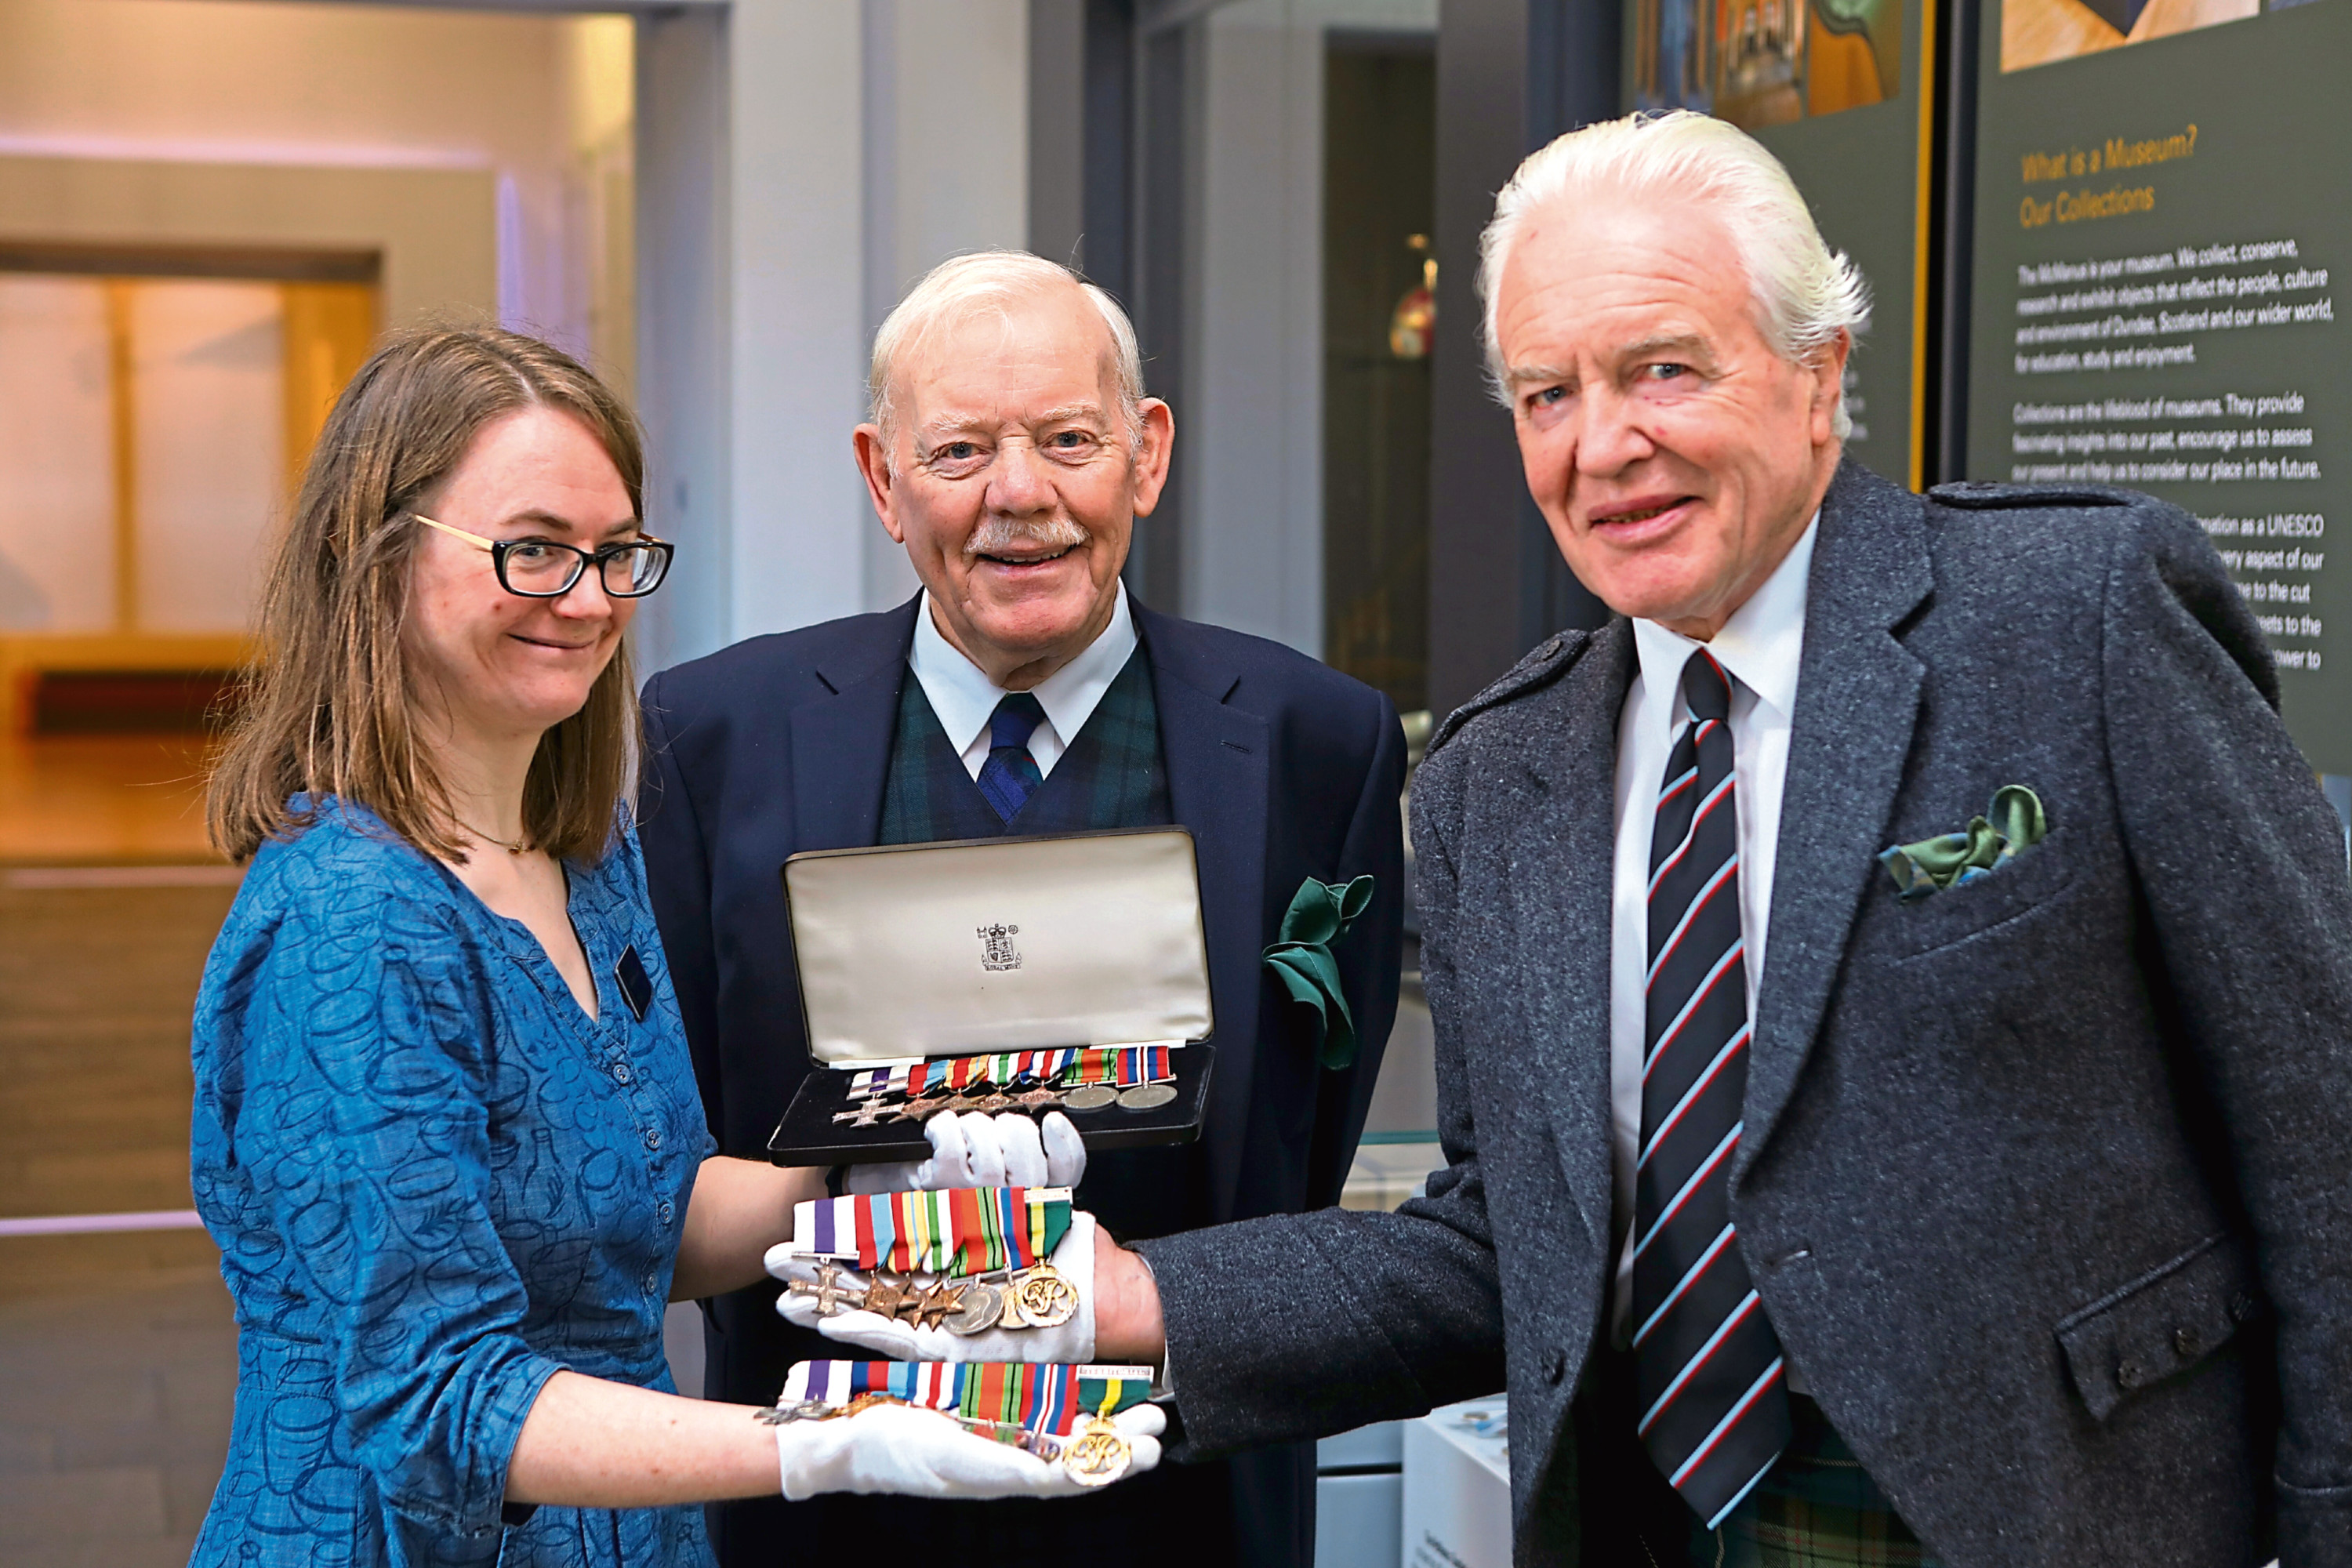 Tele News - Dundee story - Medals handed over to Mcmanus.  CR0016916 Picture shows; Carly Cooper - Curator, with Ian Rae, right, and Sinclair Aitken, centre, Chairman of LACD, holding the medals that were handed over to the McManus Galleris in Dundee today from the Rae family. Friday 29th November 2019. Dougie Nicolson / DCT Media.